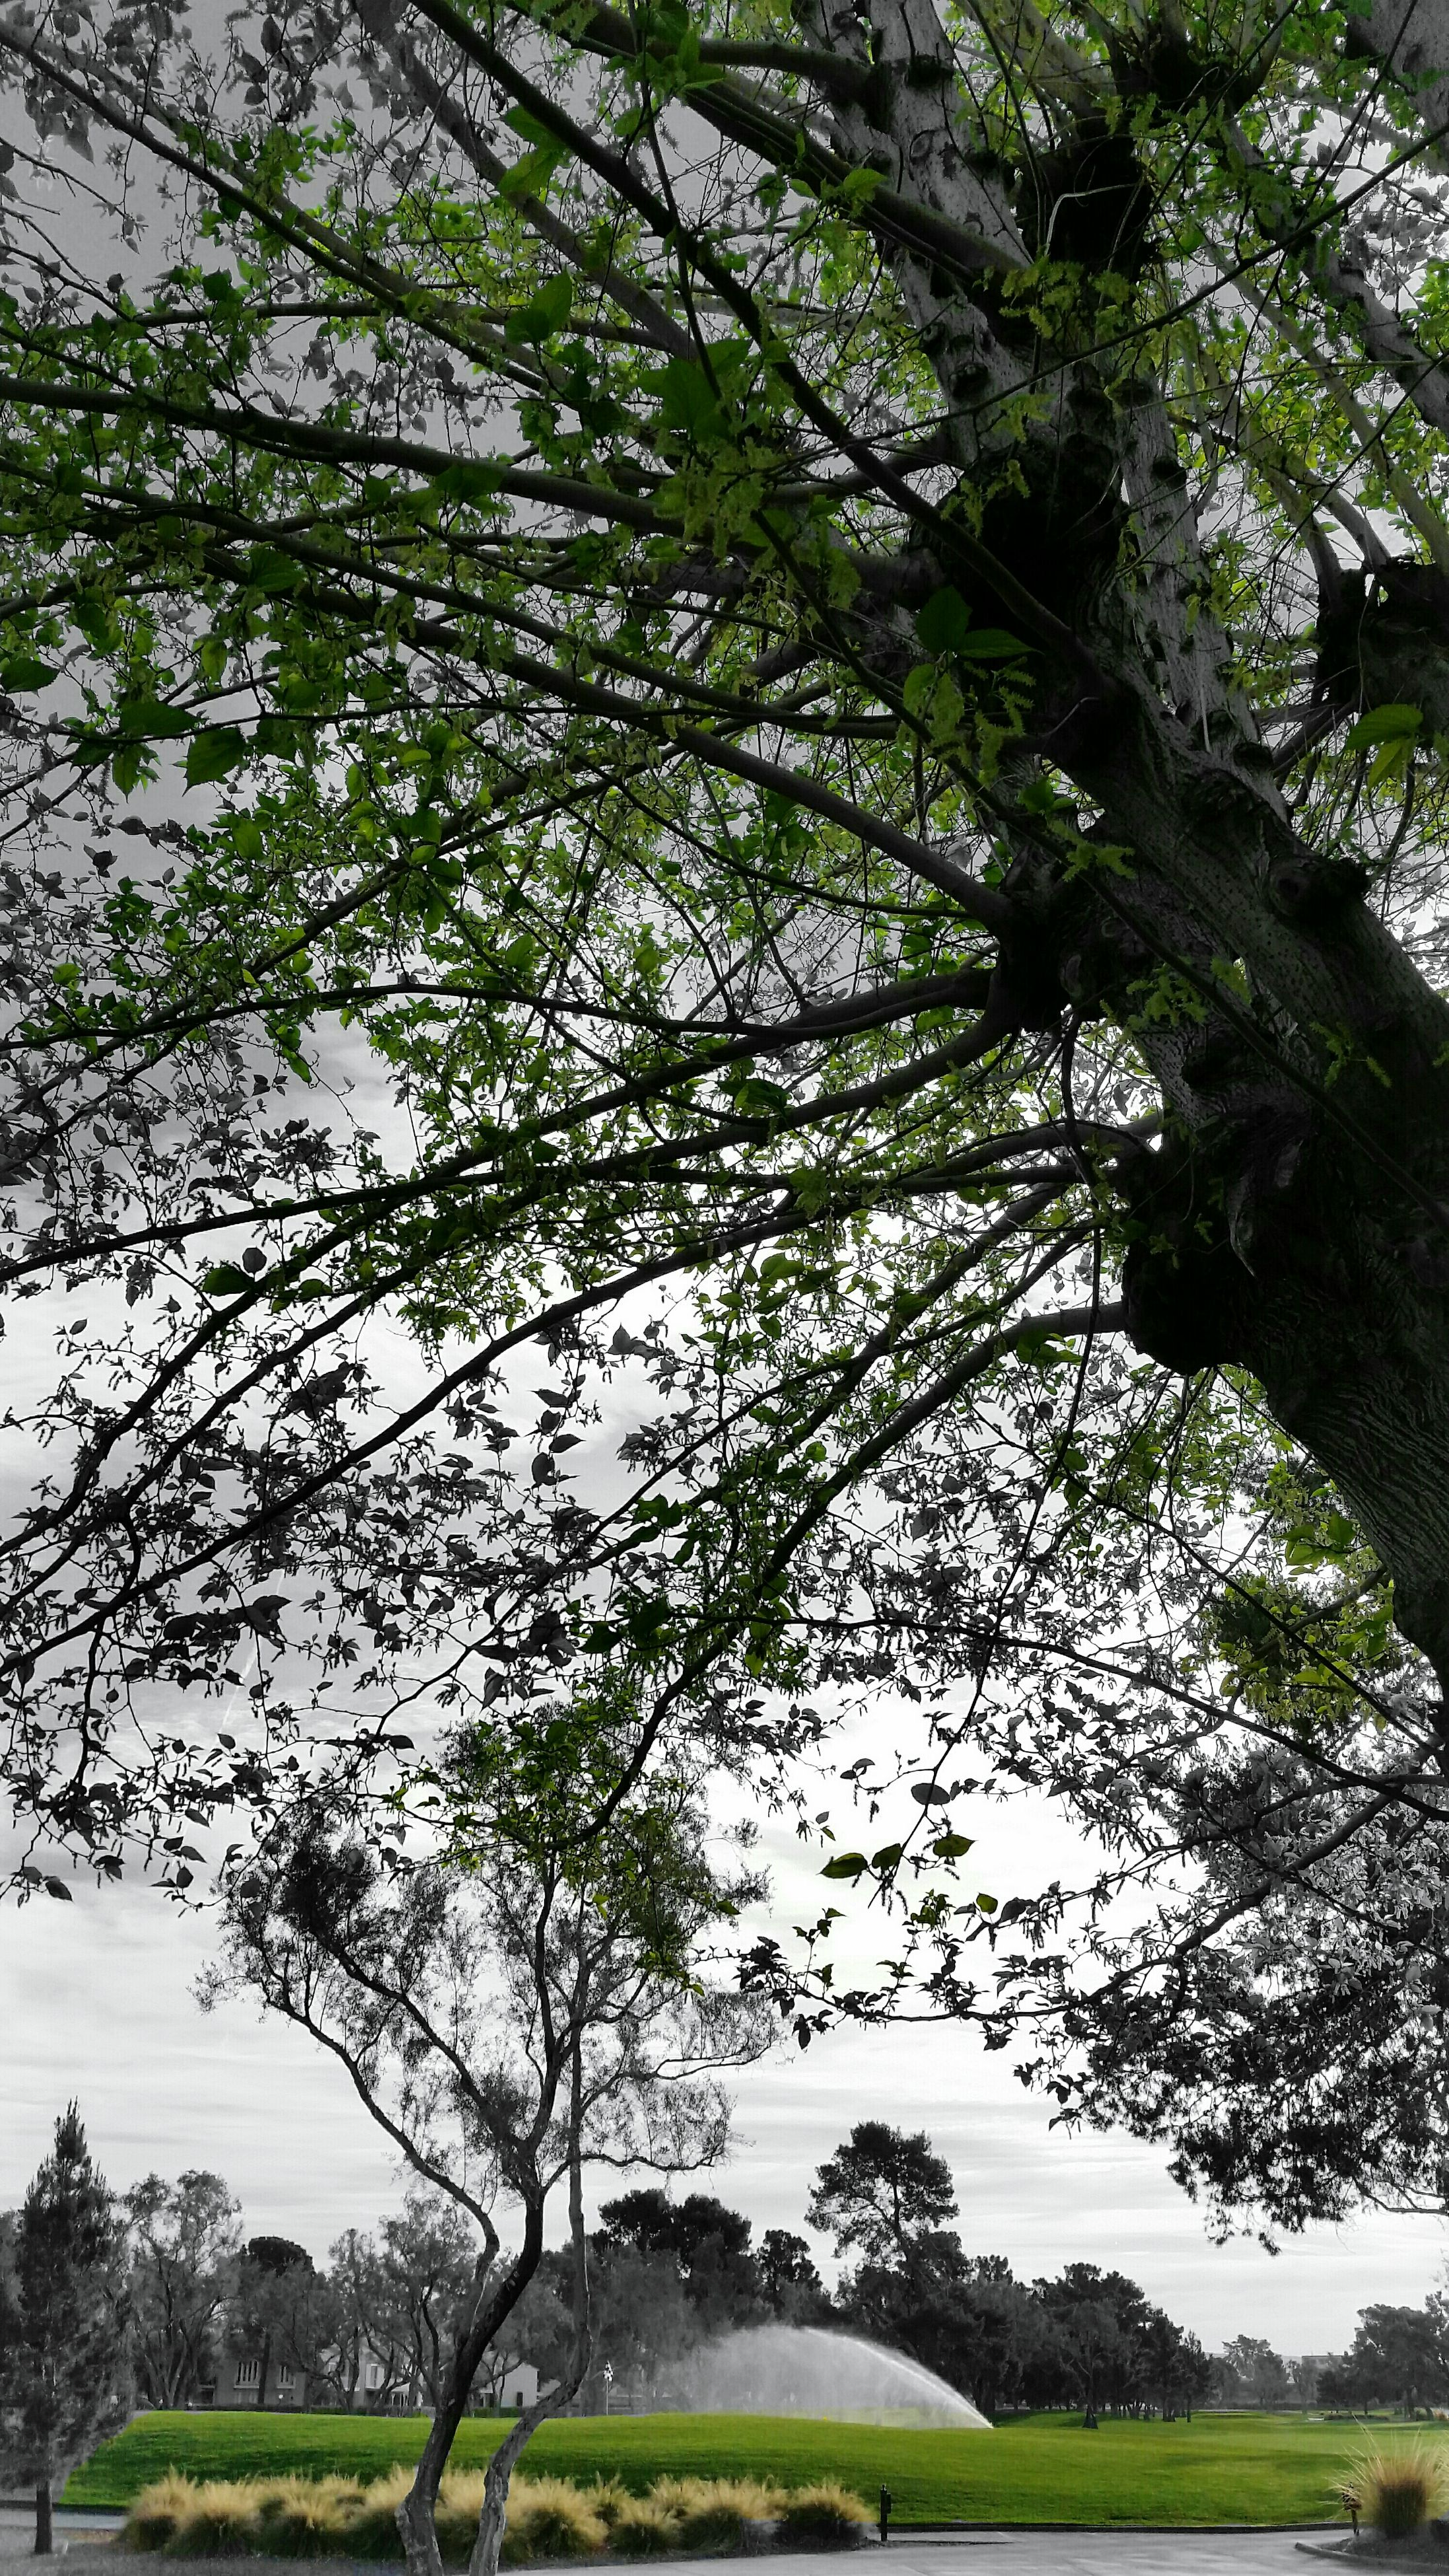 tree, nature, growth, branch, no people, low angle view, outdoors, beauty in nature, day, sky, grass, close-up